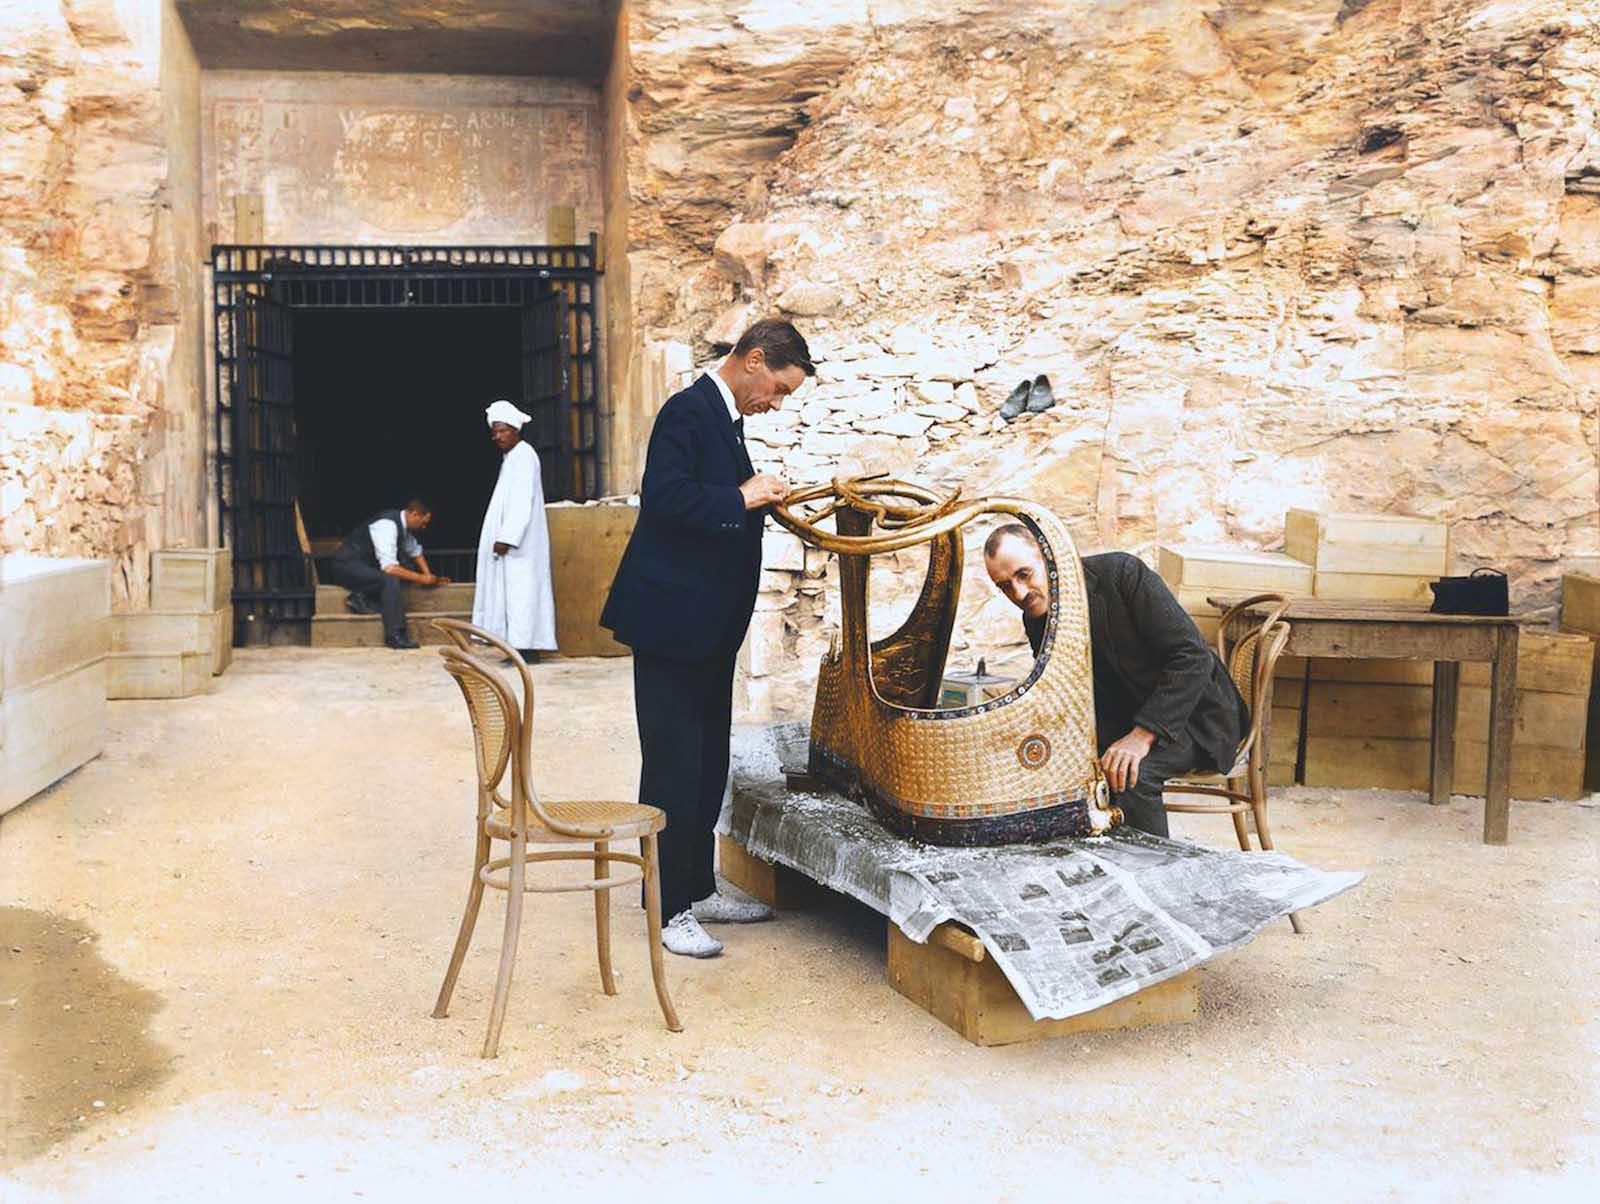 Arthur Mace and Alfred Lucas work on a golden chariot from Tutankhamun's tomb outside the